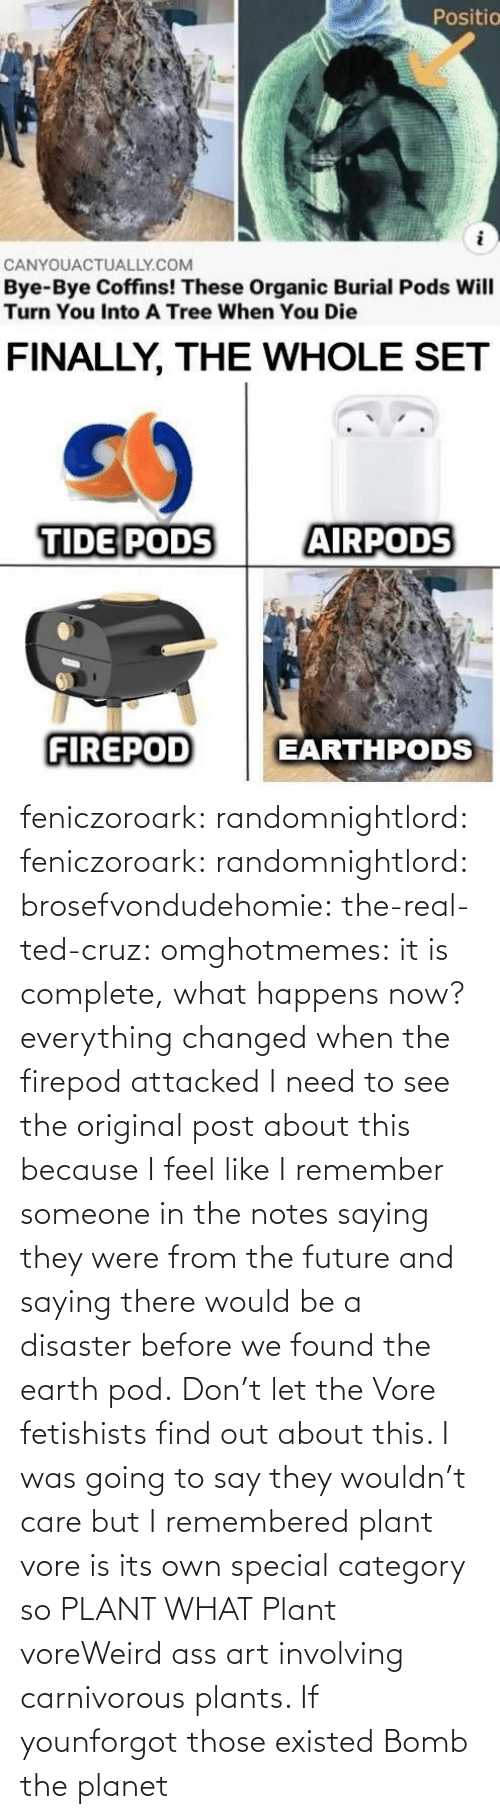 Would Be: feniczoroark:  randomnightlord:  feniczoroark:  randomnightlord:  brosefvondudehomie: the-real-ted-cruz:  omghotmemes: it is complete, what happens now? everything changed when the firepod attacked    I need to see the original post about this because I feel like I remember someone in the notes saying they were from the future and saying there would be a disaster before we found the earth pod.    Don't let the Vore fetishists find out about this.    I was going to say they wouldn't care but I remembered plant vore is its own special category so   PLANT WHAT   Plant voreWeird ass art involving carnivorous plants. If younforgot those existed   Bomb the planet